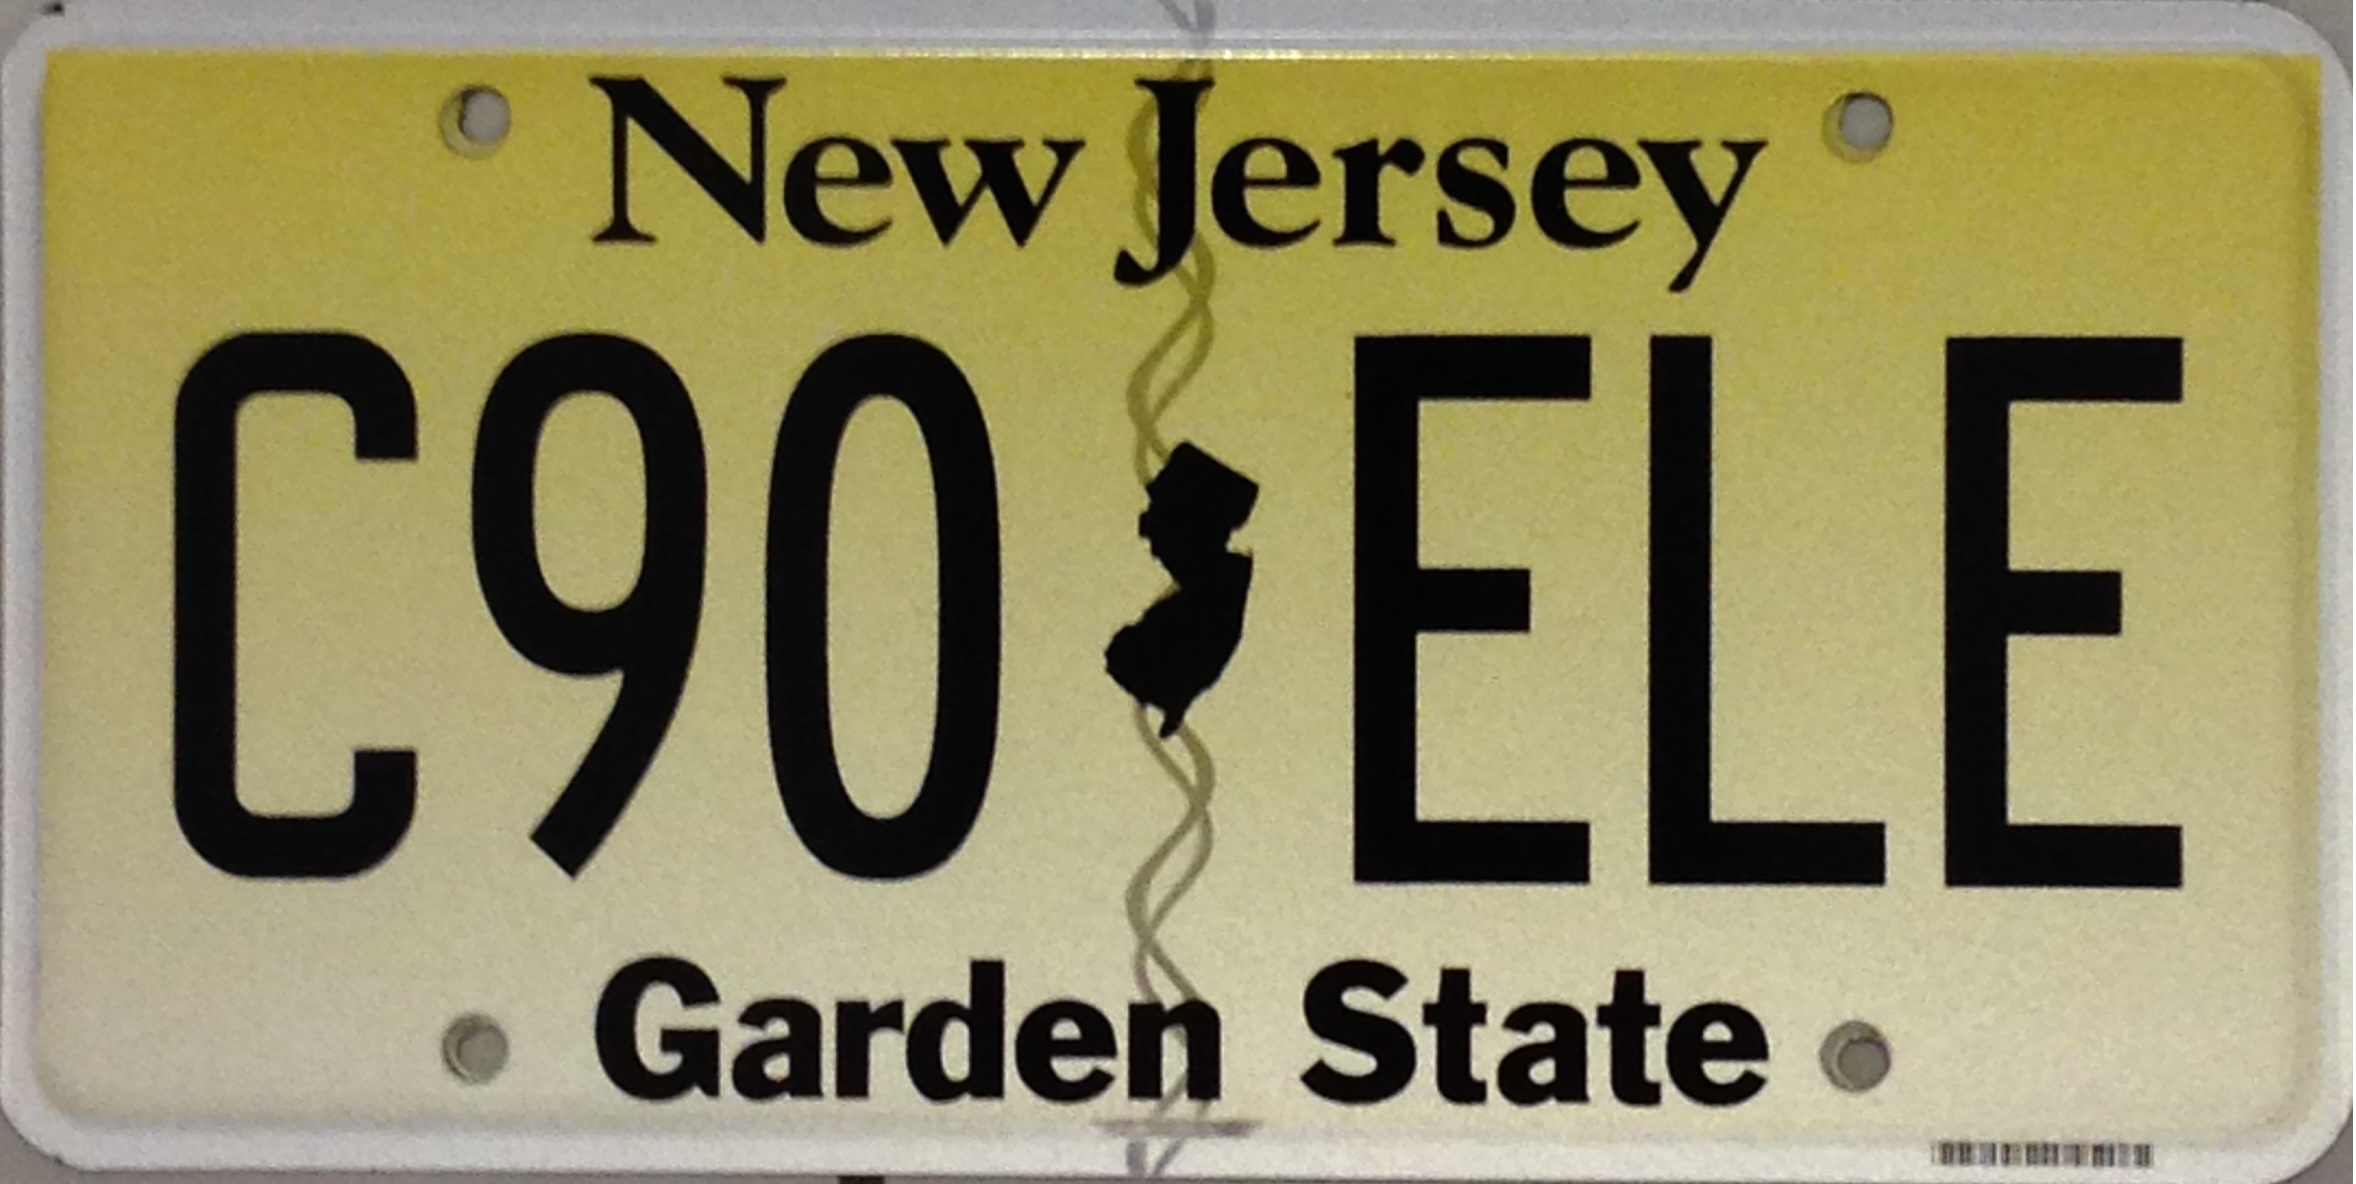 image regarding Printable Temporary License Plate Template named Car registration plates of Clean Jersey - Wikipedia